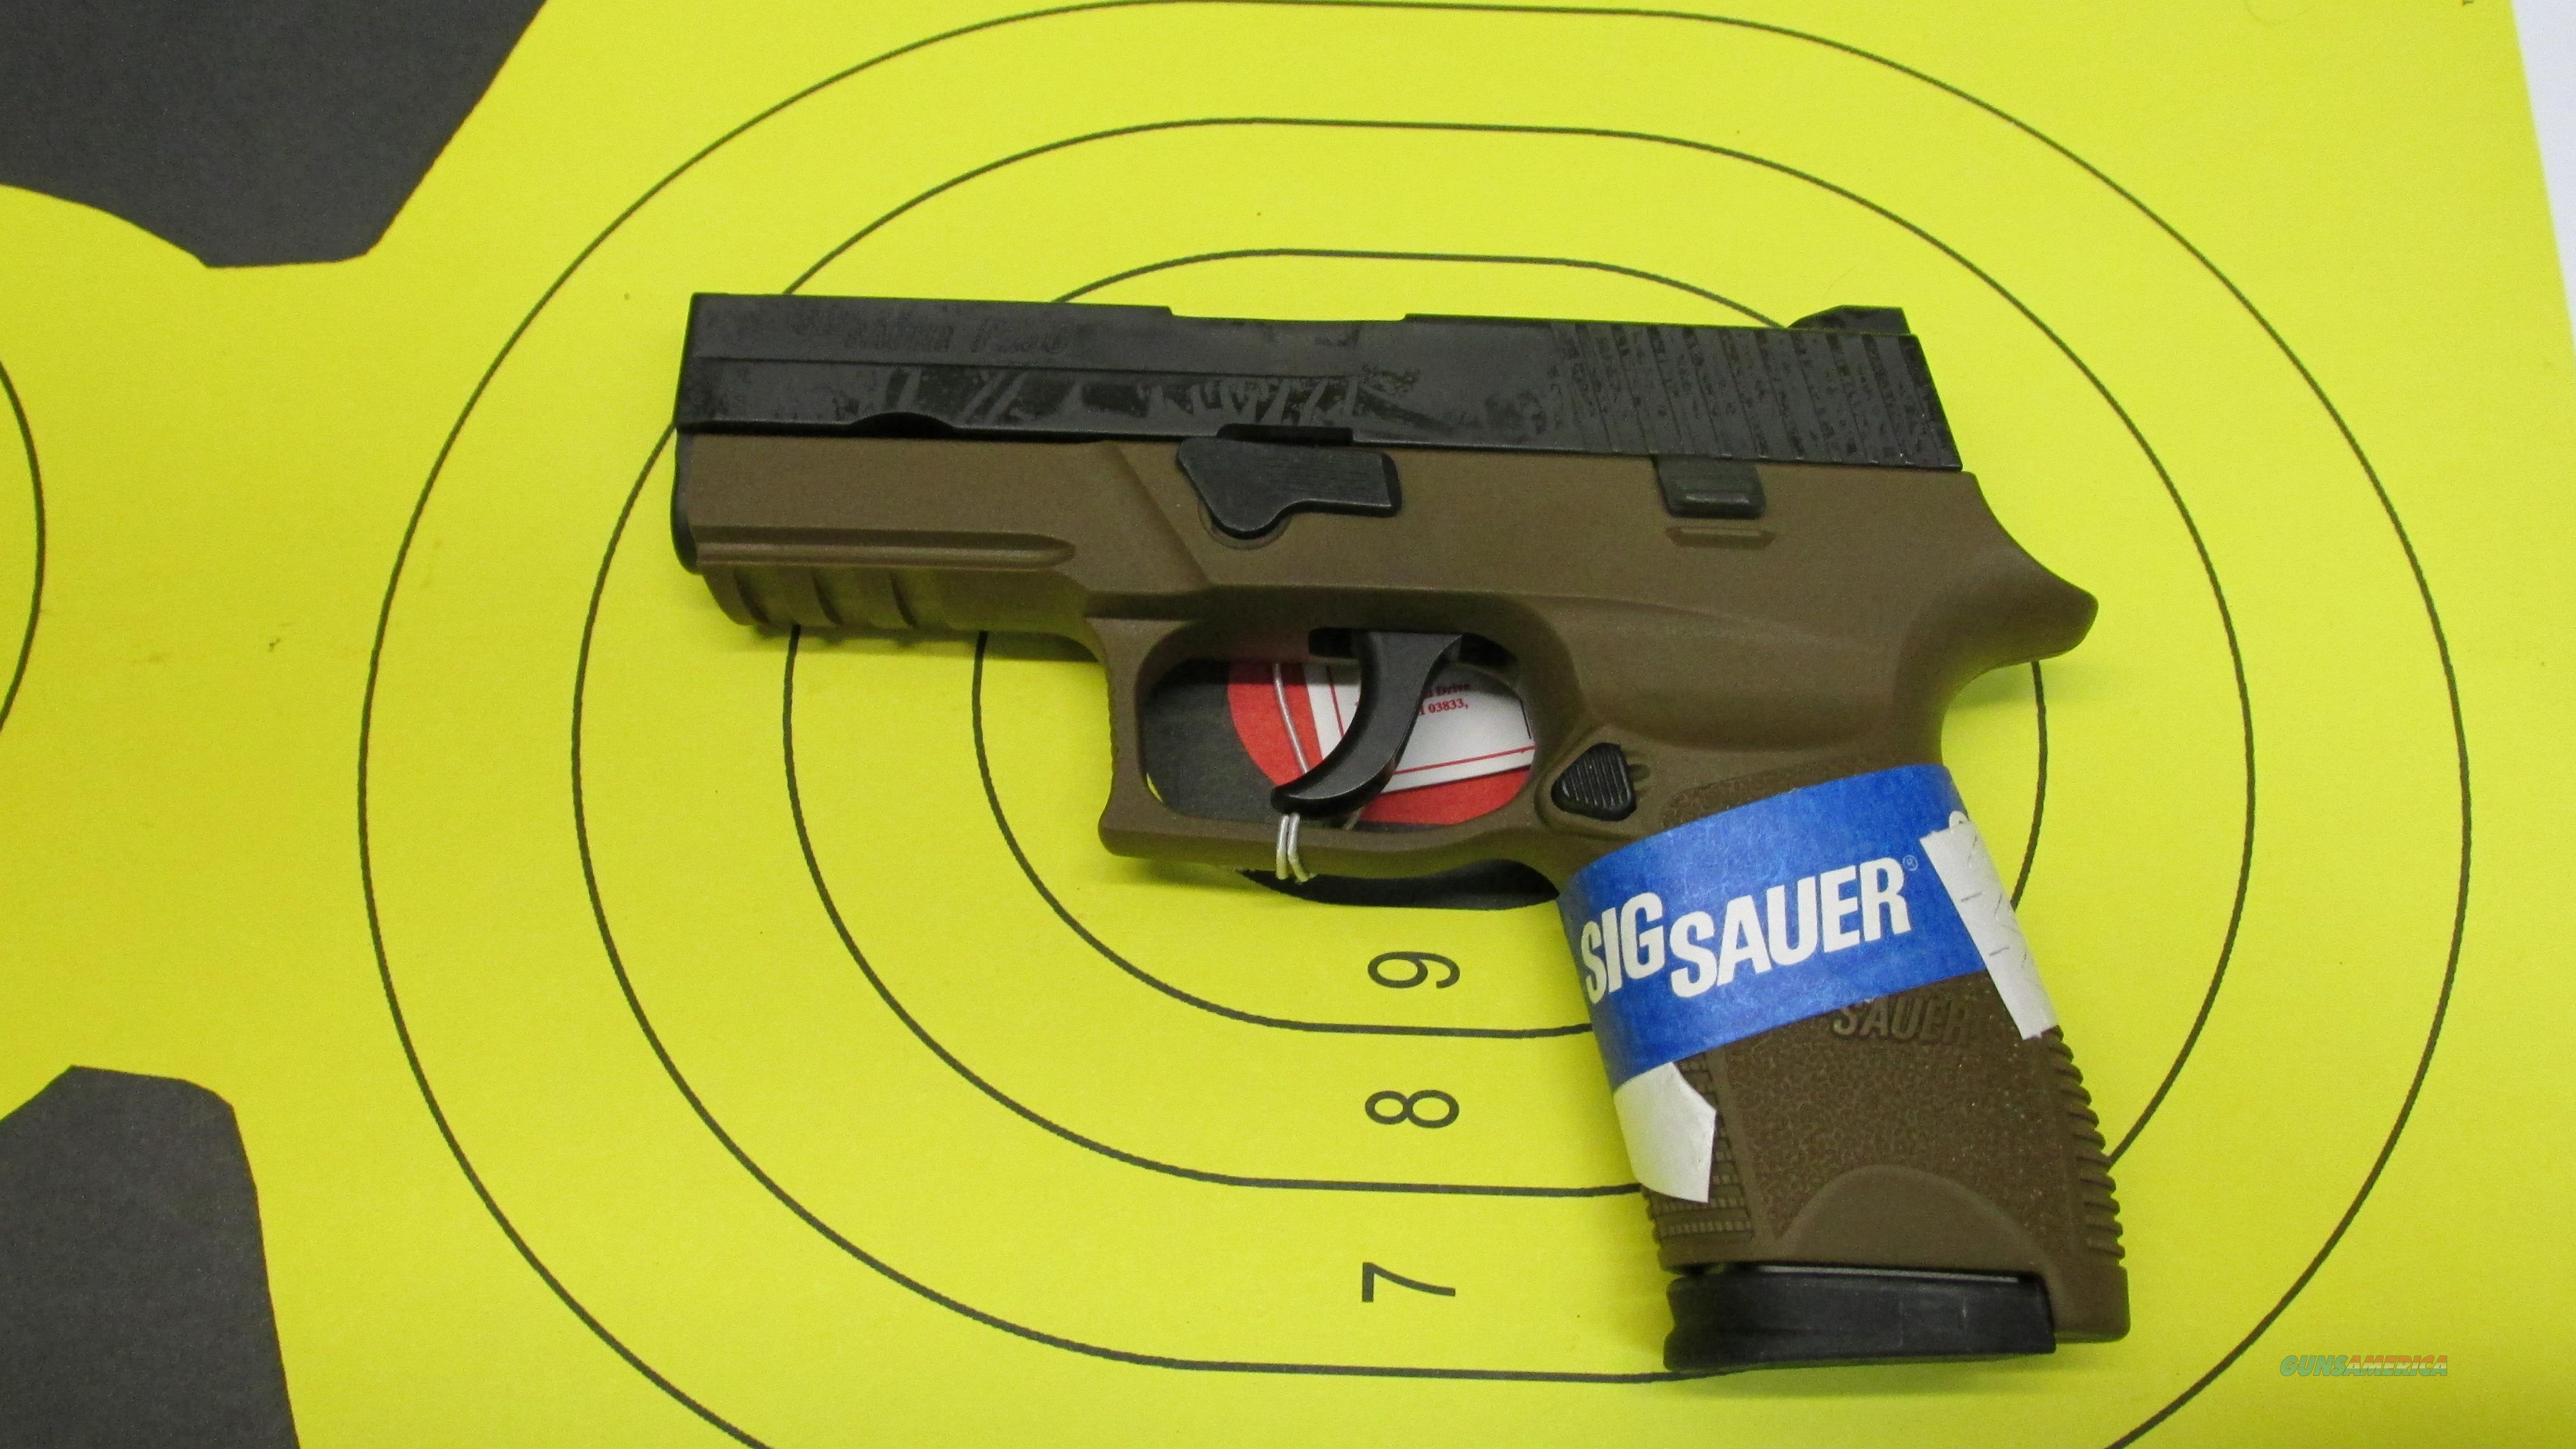 """SIG SAUER P250 COMPACT FDE 9MM PISTOL 15 ROUND MAG WITH 4"""" BARREL AND NIGHT SIGHTS  Guns > Pistols > Sig - Sauer/Sigarms Pistols > P250"""